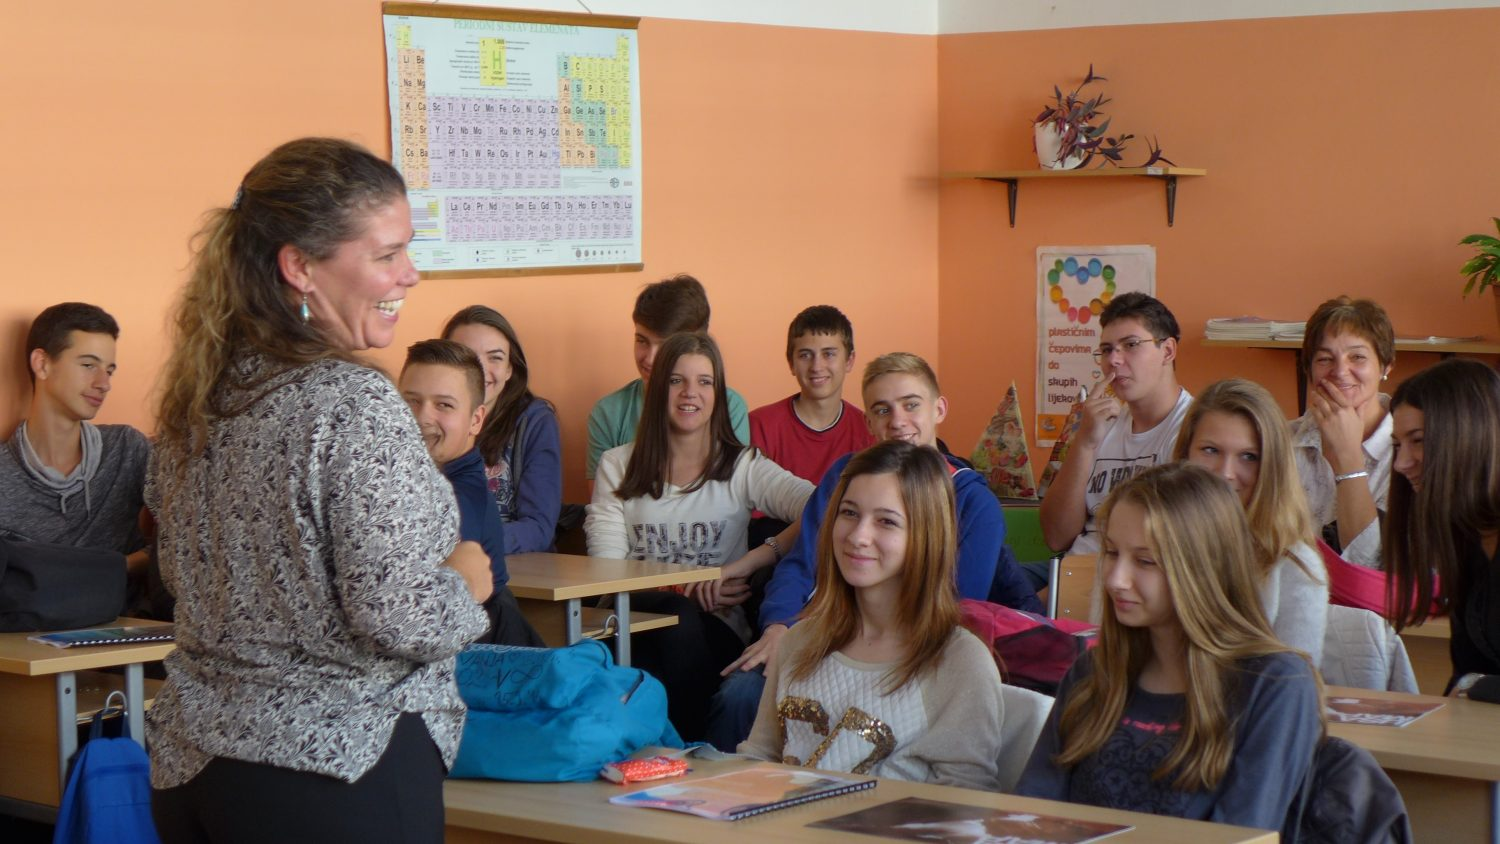 Michelle Schroeder-Moreno with classroom students in Croatia during Fulbright Scholar Program